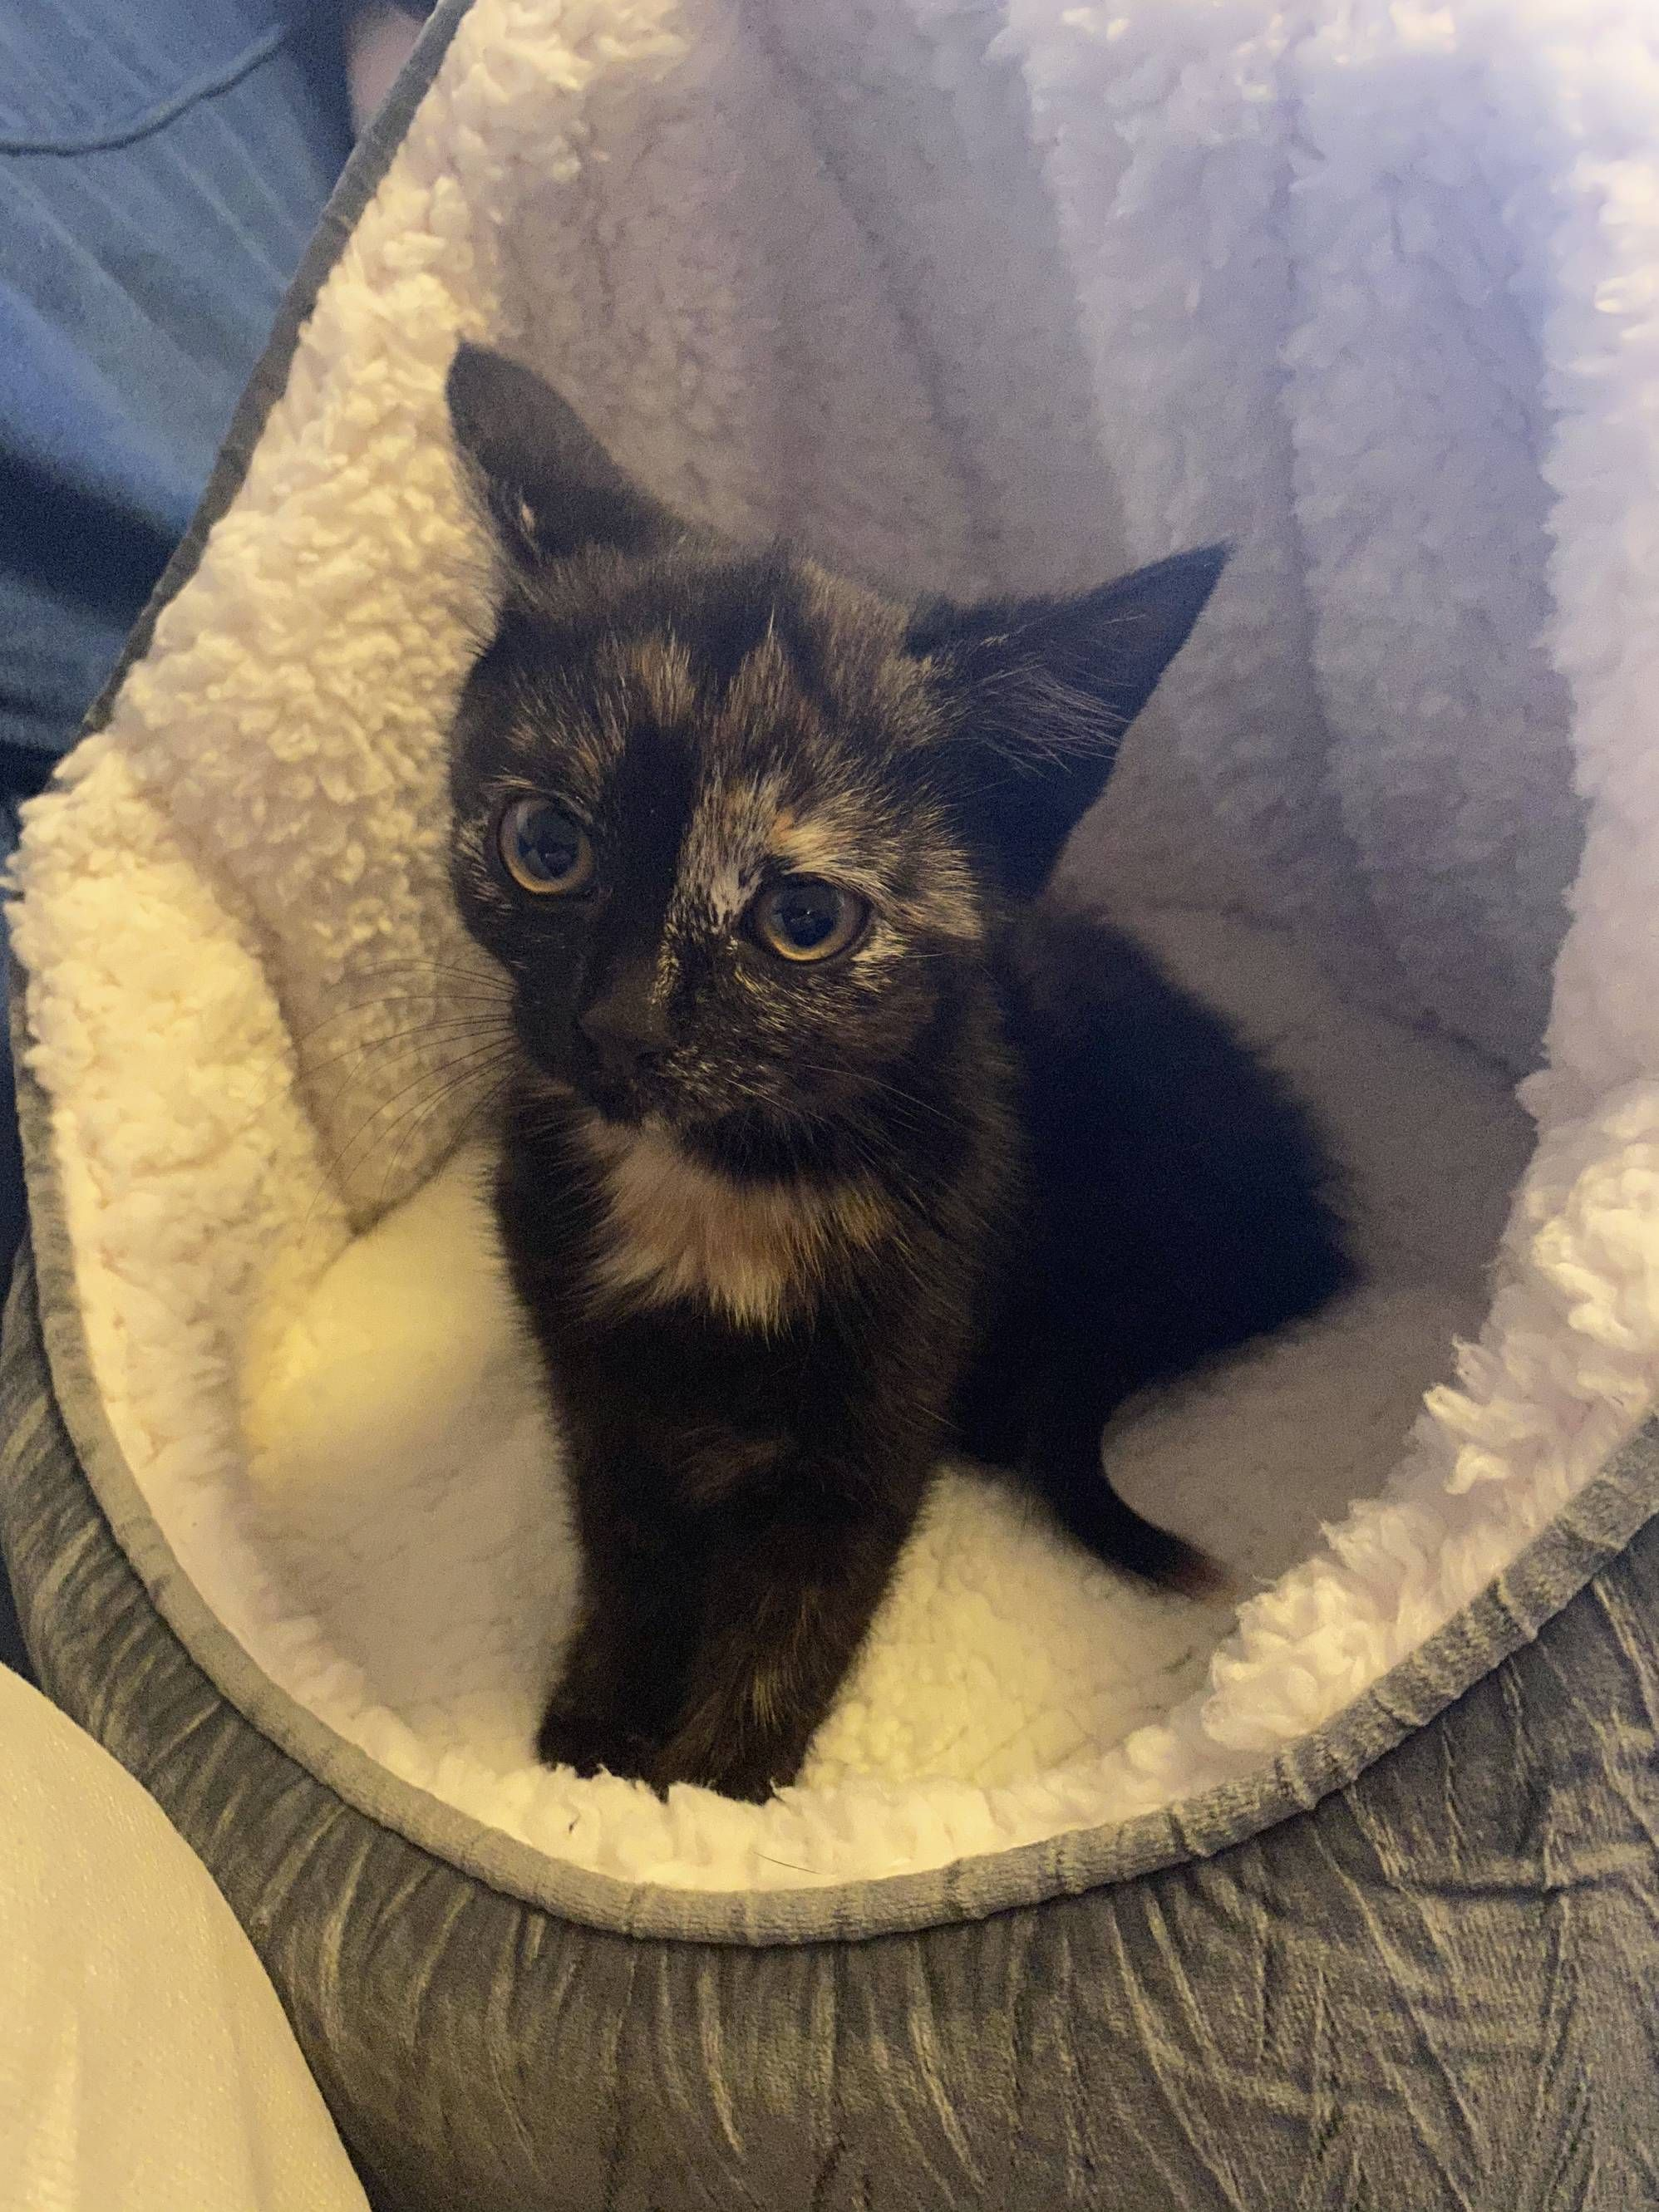 Today I Adopted A Stray Kitten Meet Astridhttps I Imgur Com Hd9uwqm Jpg In 2020 Kitten Adoption Cat Qoutes Silly Cats